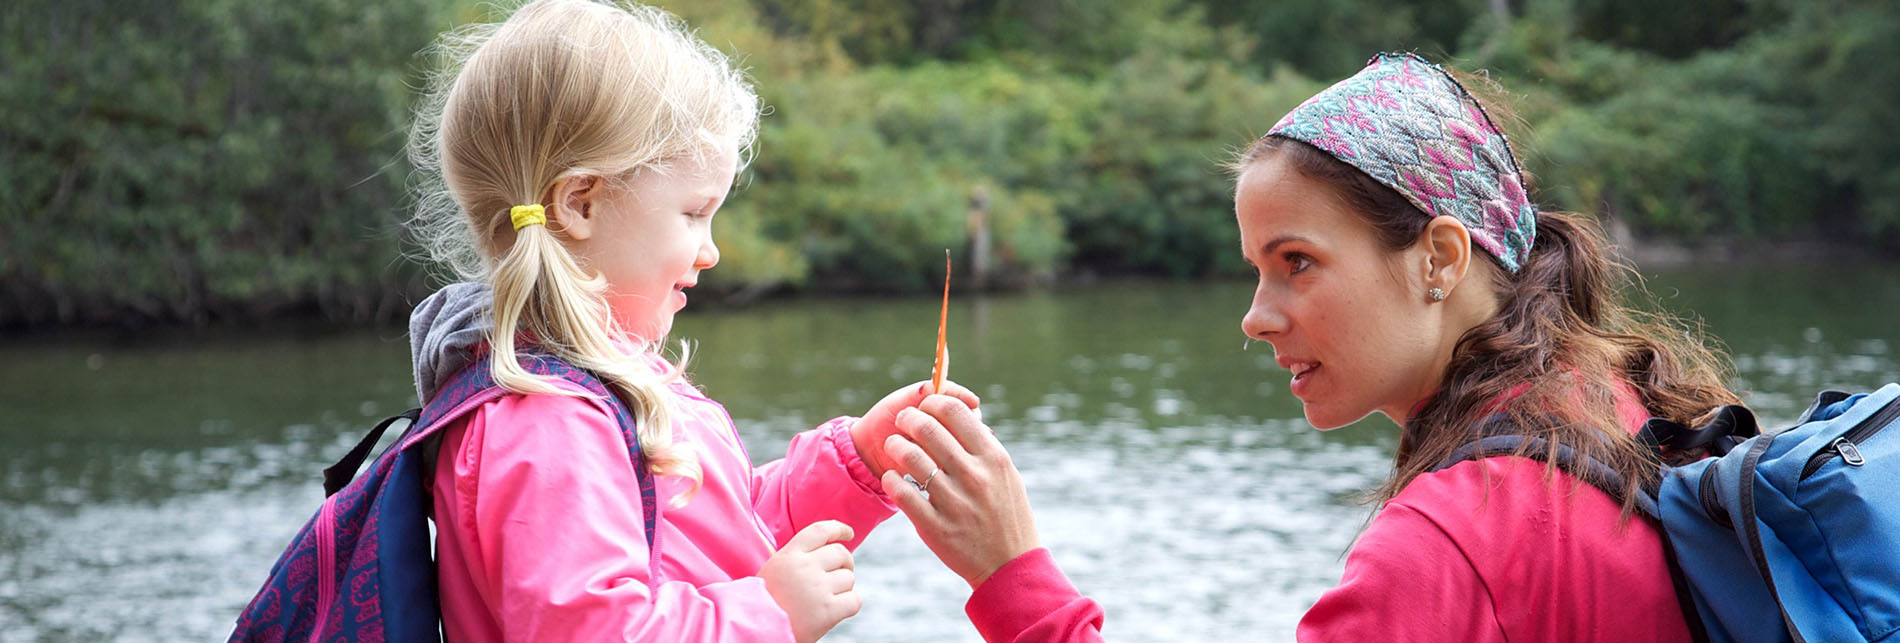 a mother and her young daughter are wearing jackets near a small body of water in a wooded area, looking at an orange leaf or feather held by the daughter.